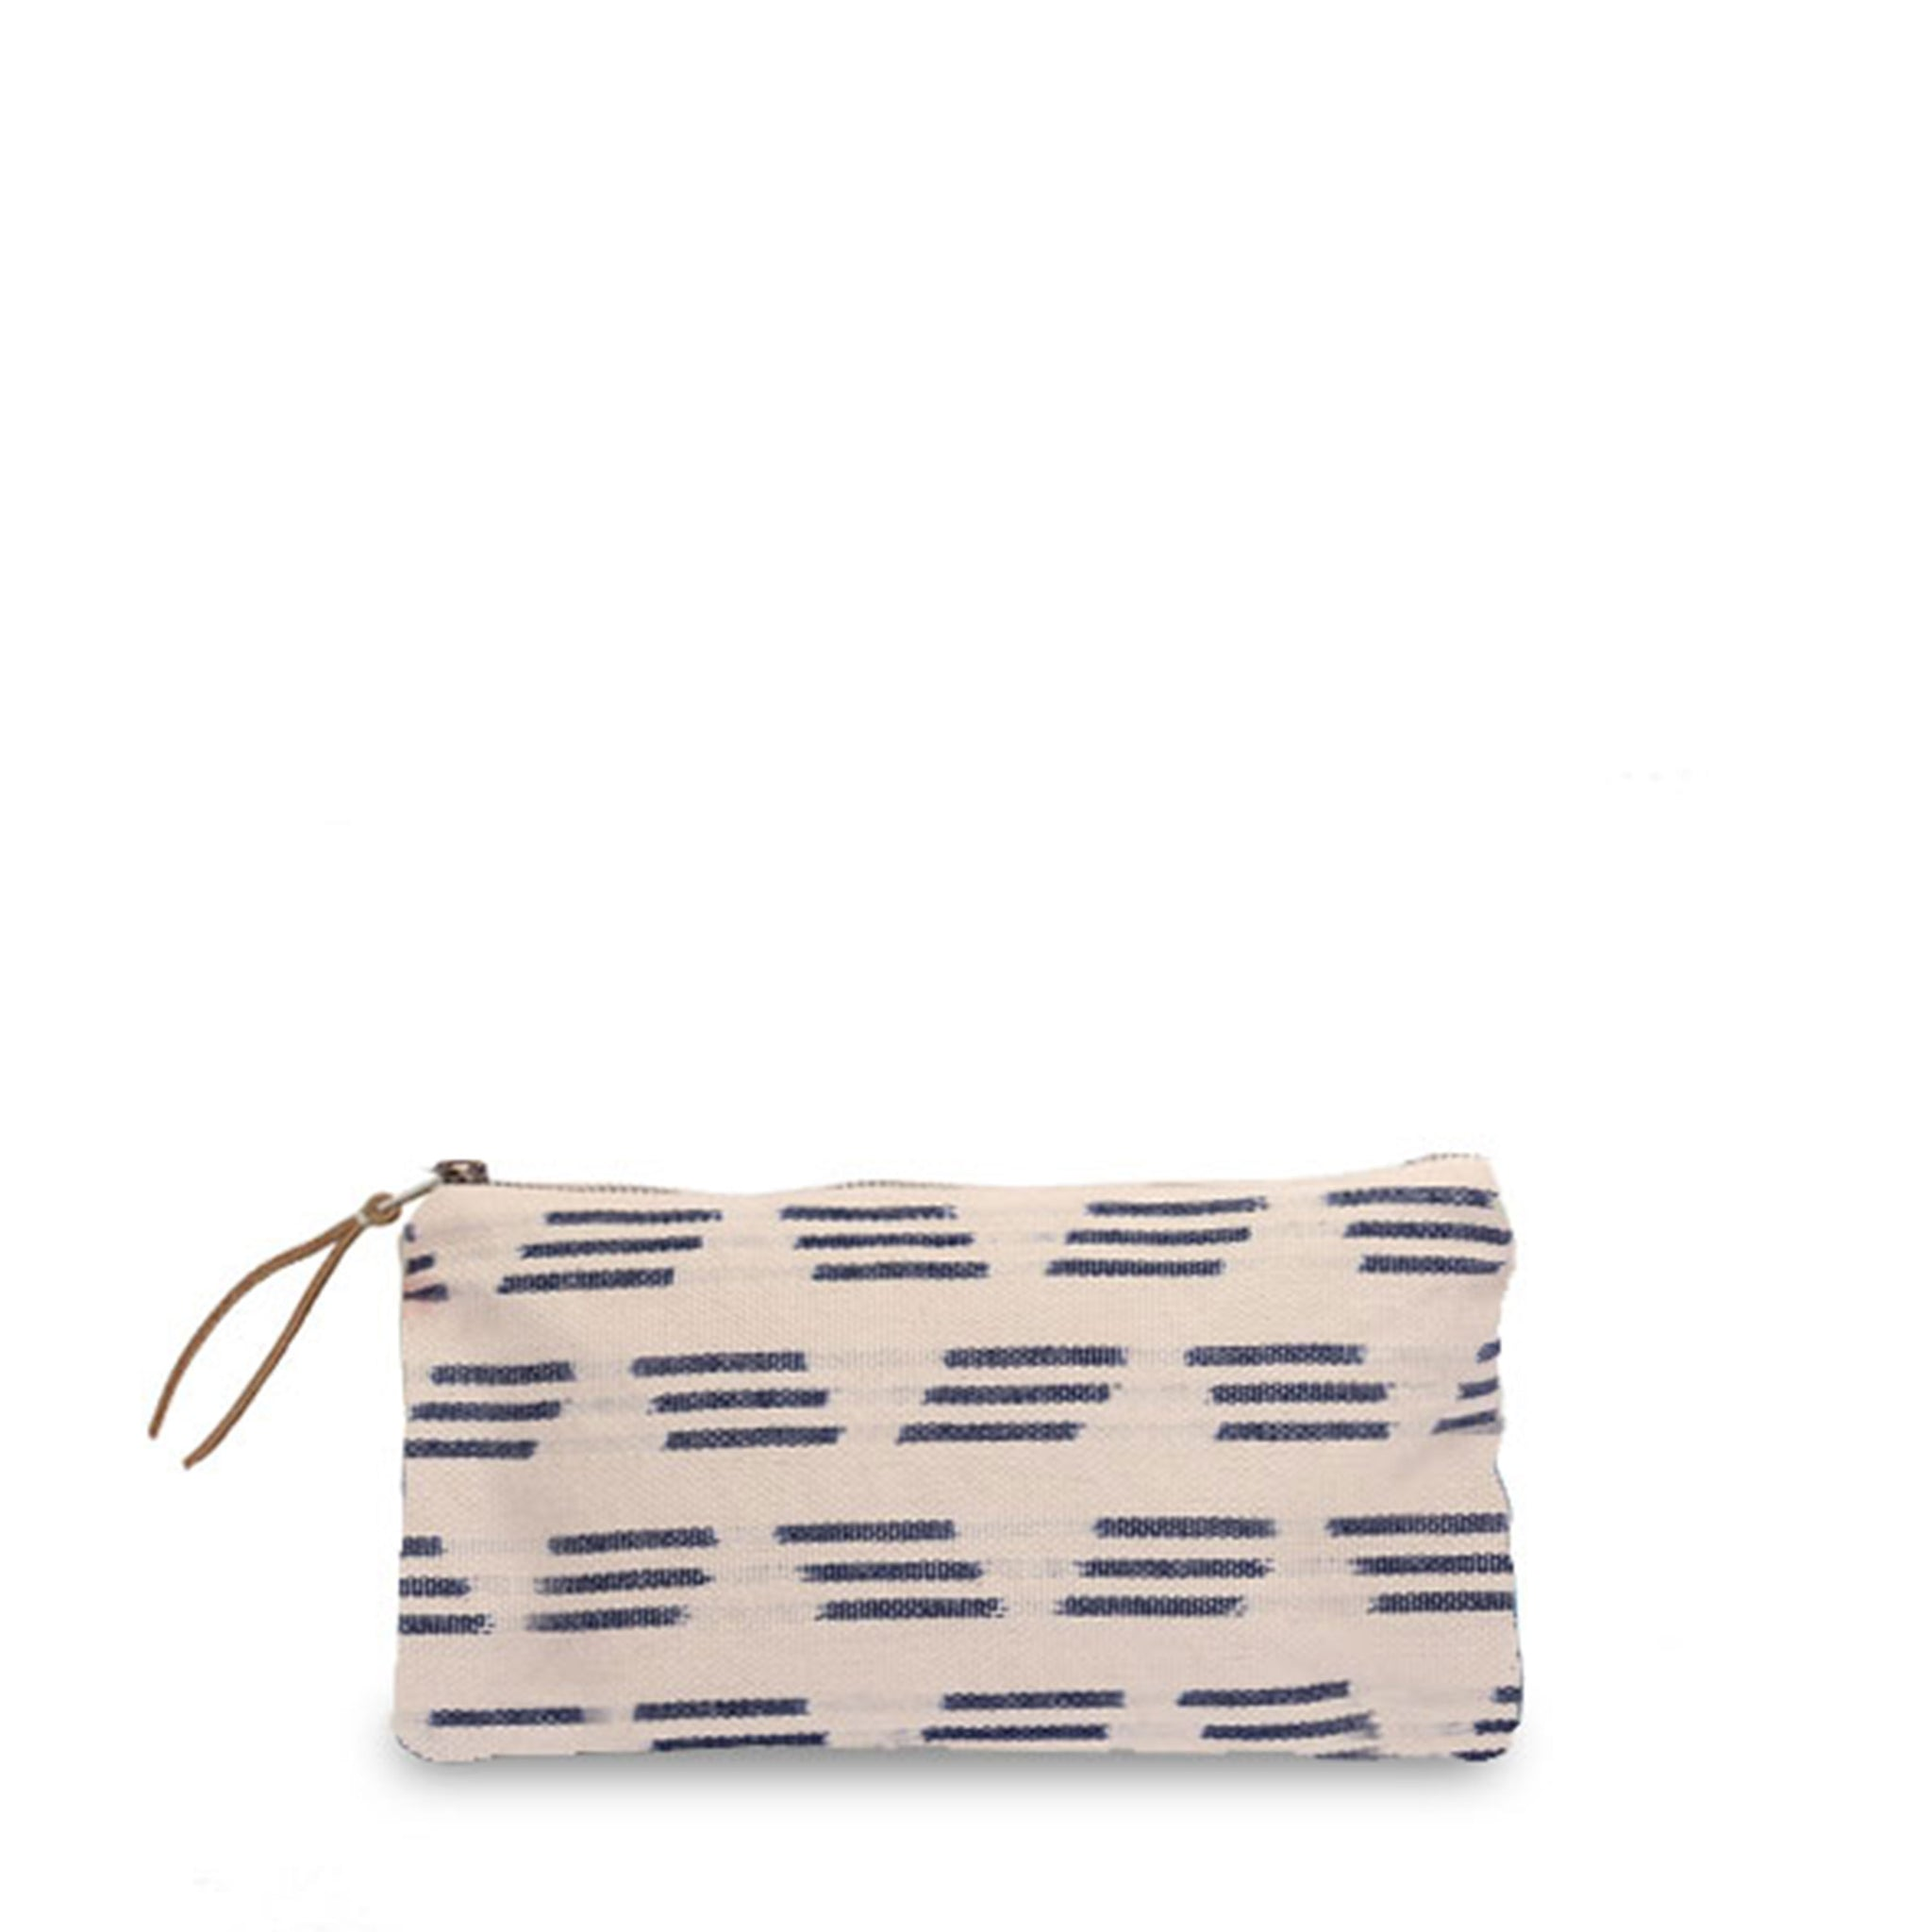 Hand woven Lamberta Pouch - Ethical Shopping at Mercado Global